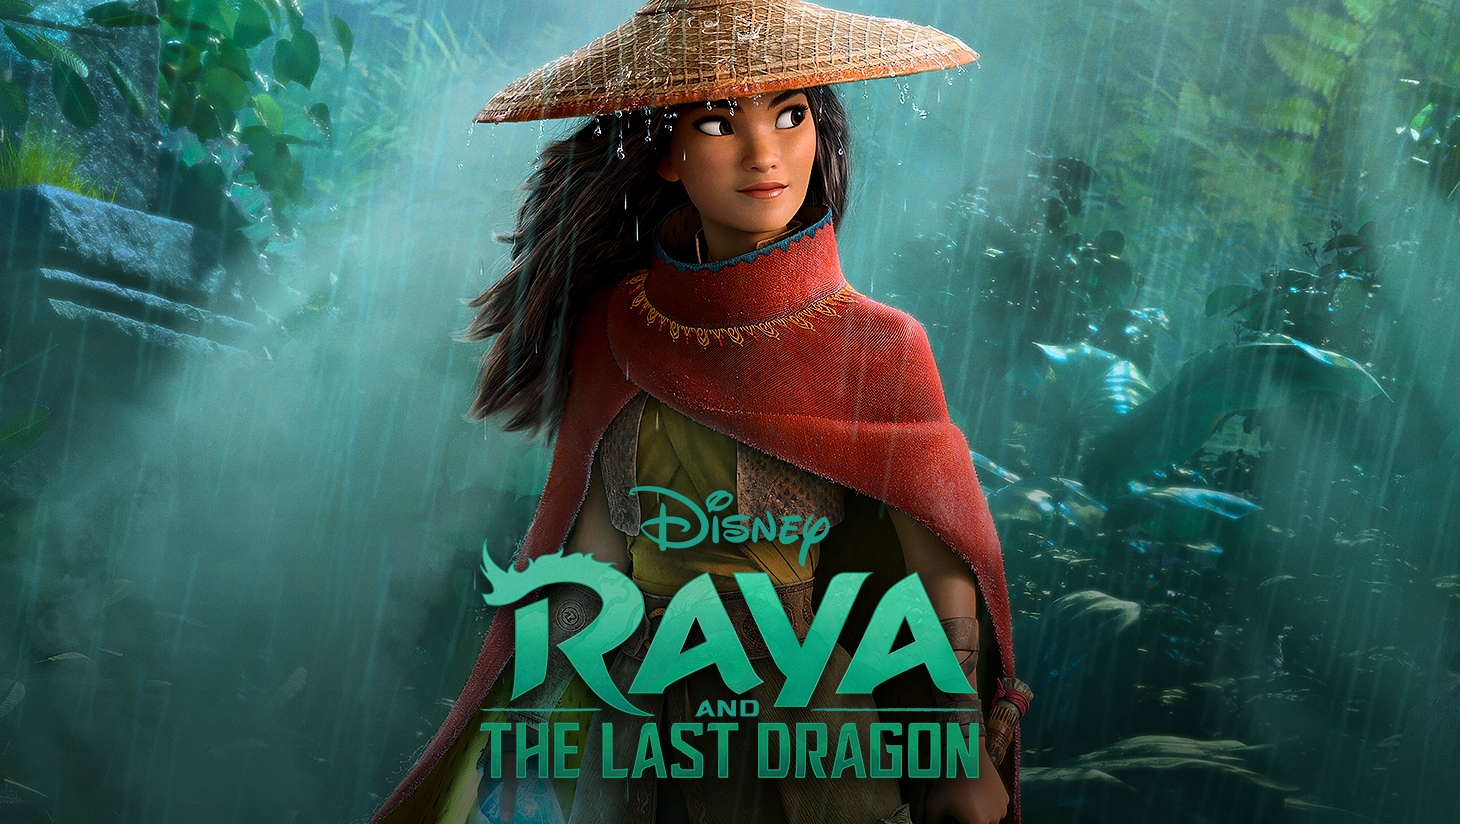 Disney's Raya and the Last Dragon art